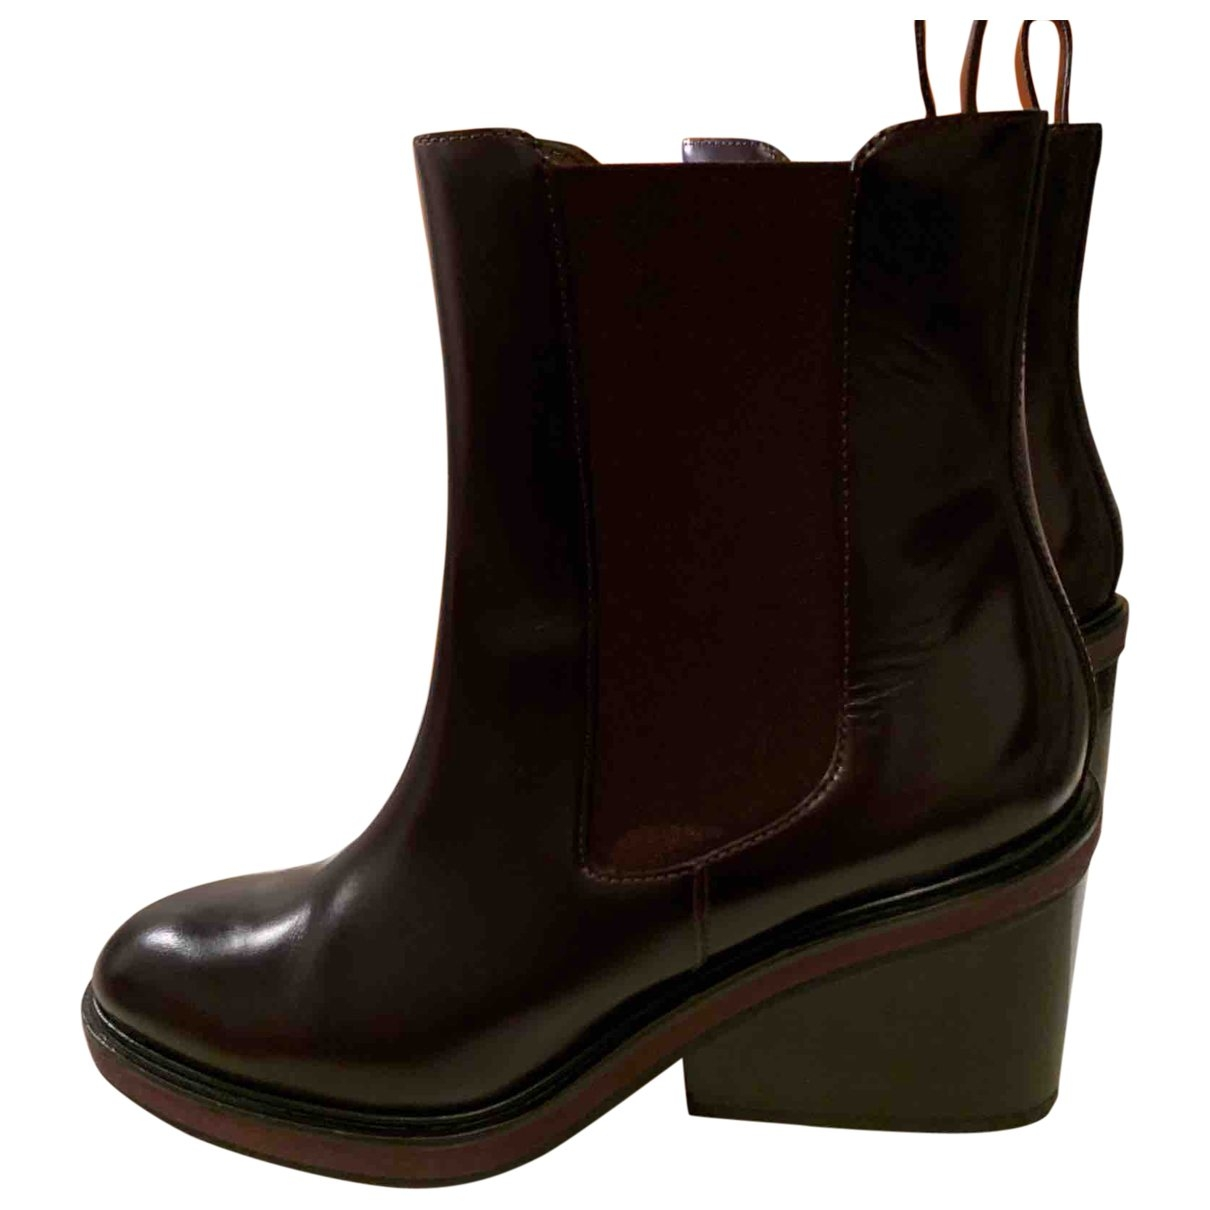 Hermès \N Burgundy Leather Ankle boots for Women 40 EU